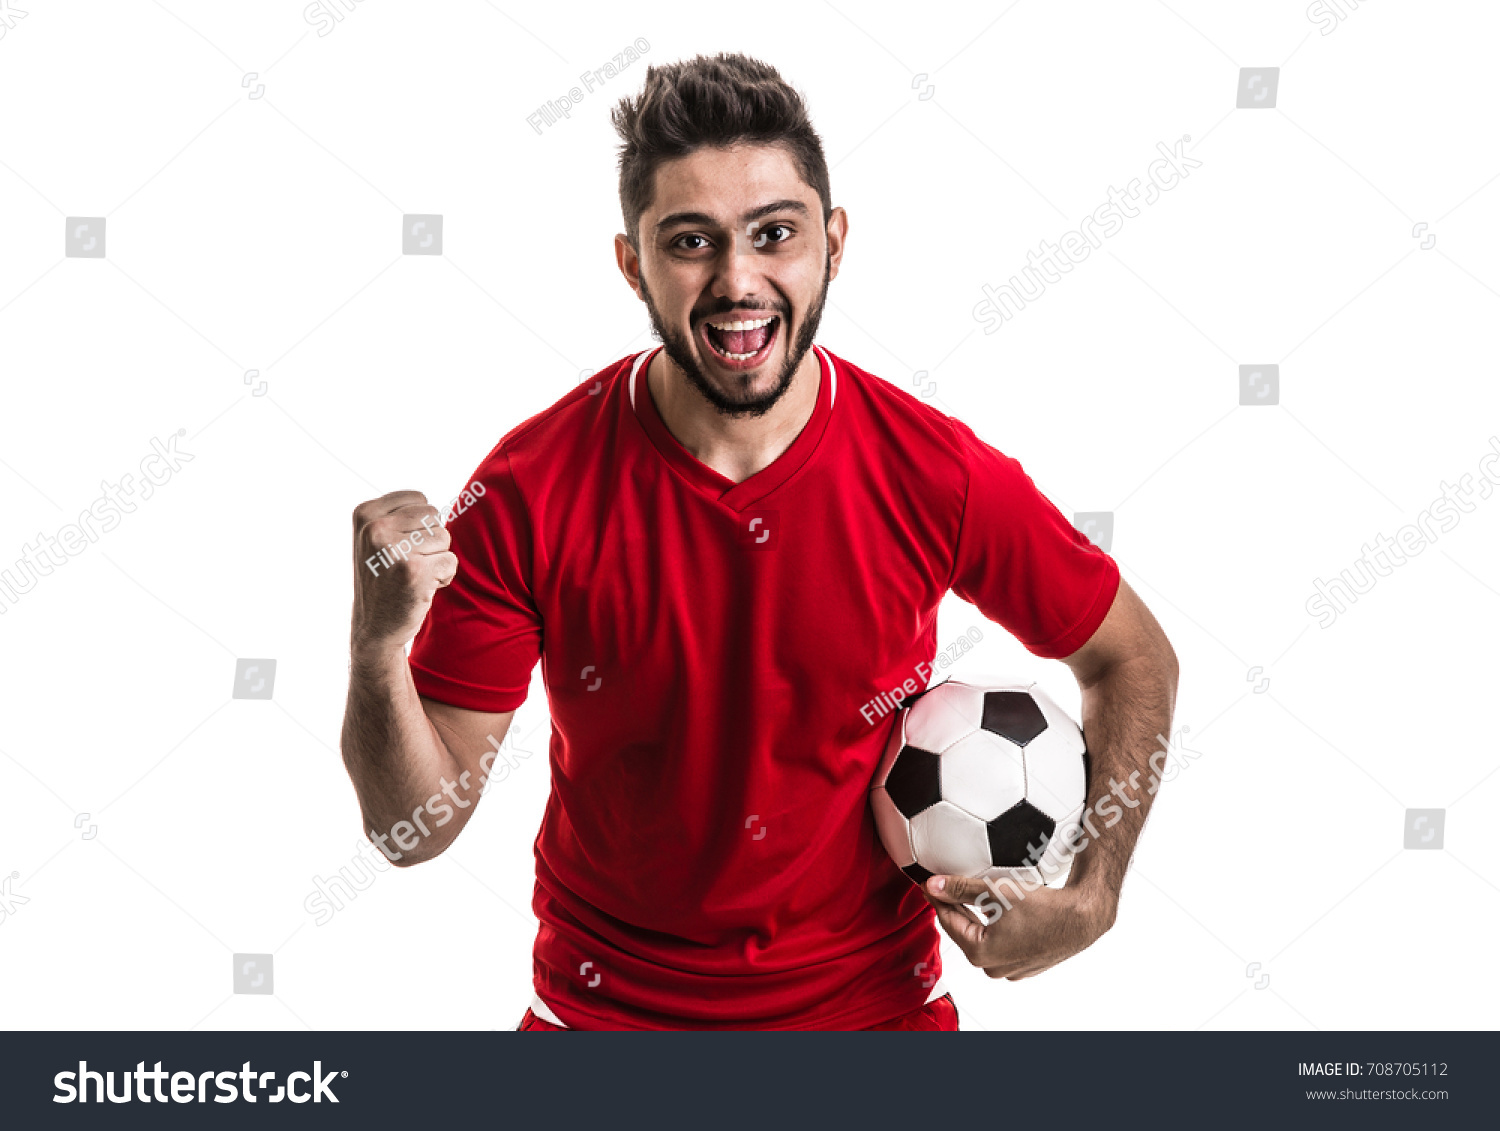 Fan / Sport Player on red uniform celebrating on white background #708705112 - 123PhotoFree.com